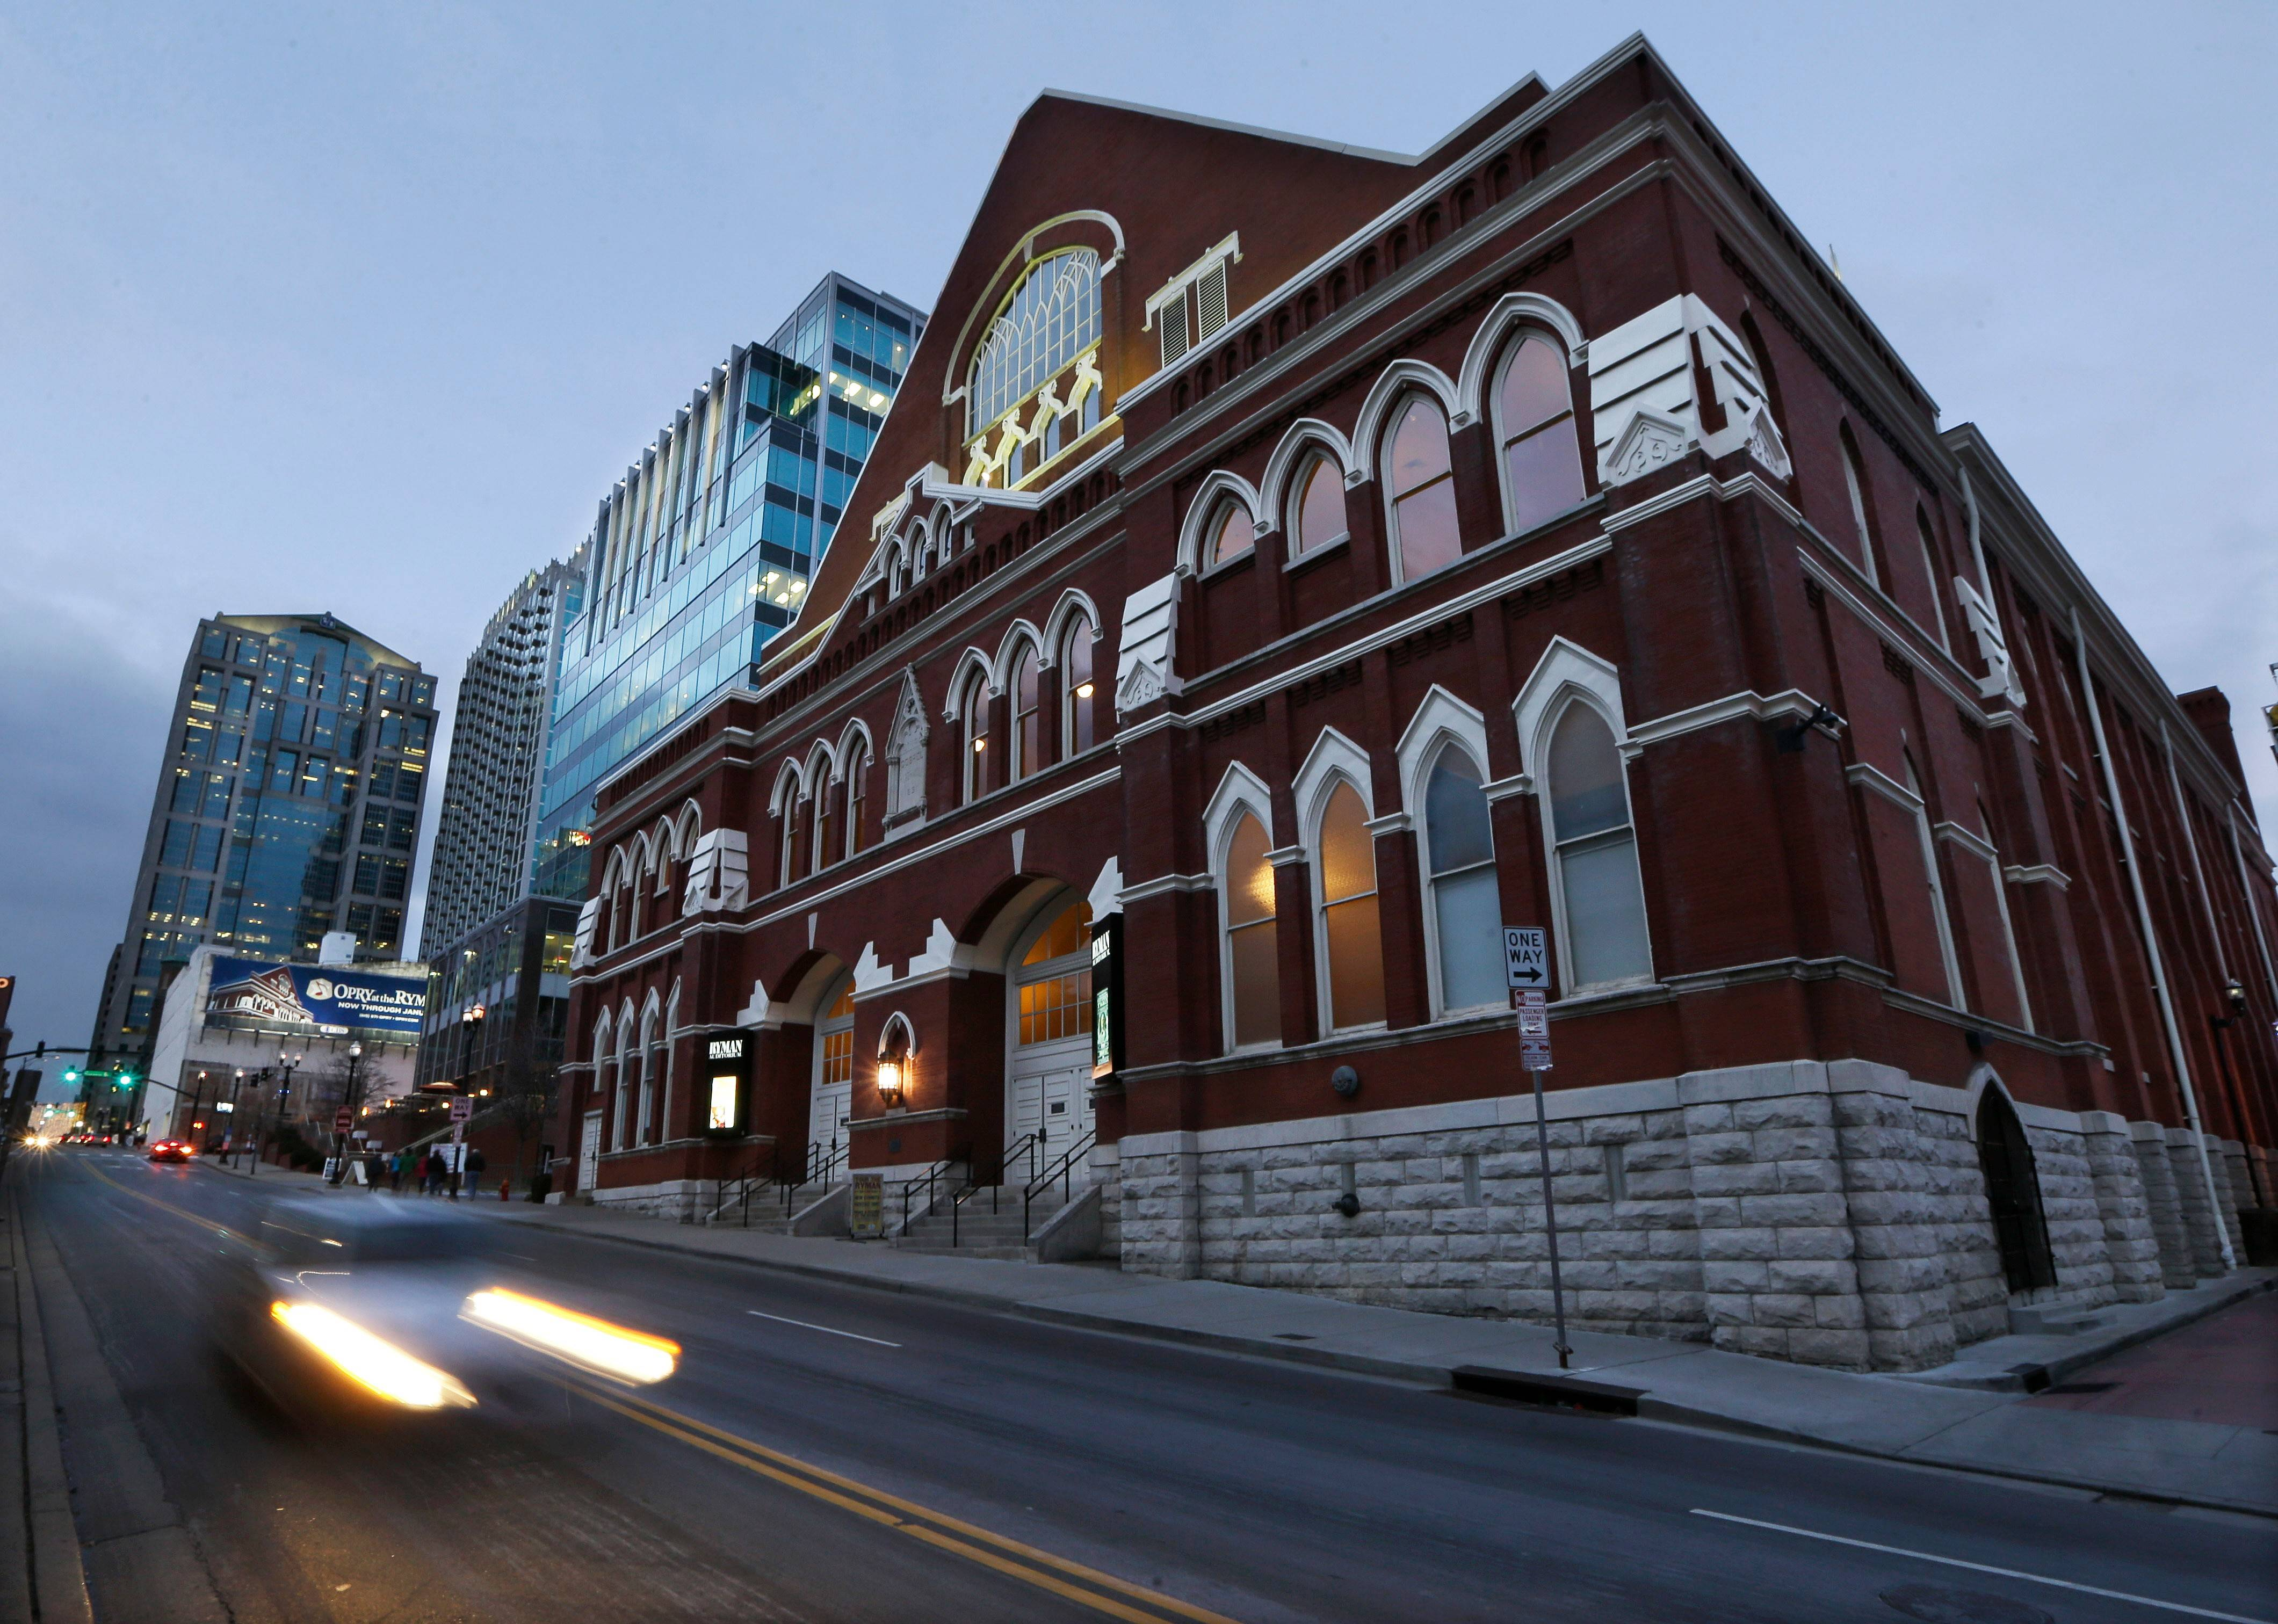 This Jan. 15, 2014 photo shows the Ryman Auditorium in Nashville, Tennessee. The wood floors and pews of the former tabernacle make it one of the best venues anywhere for hearing music.